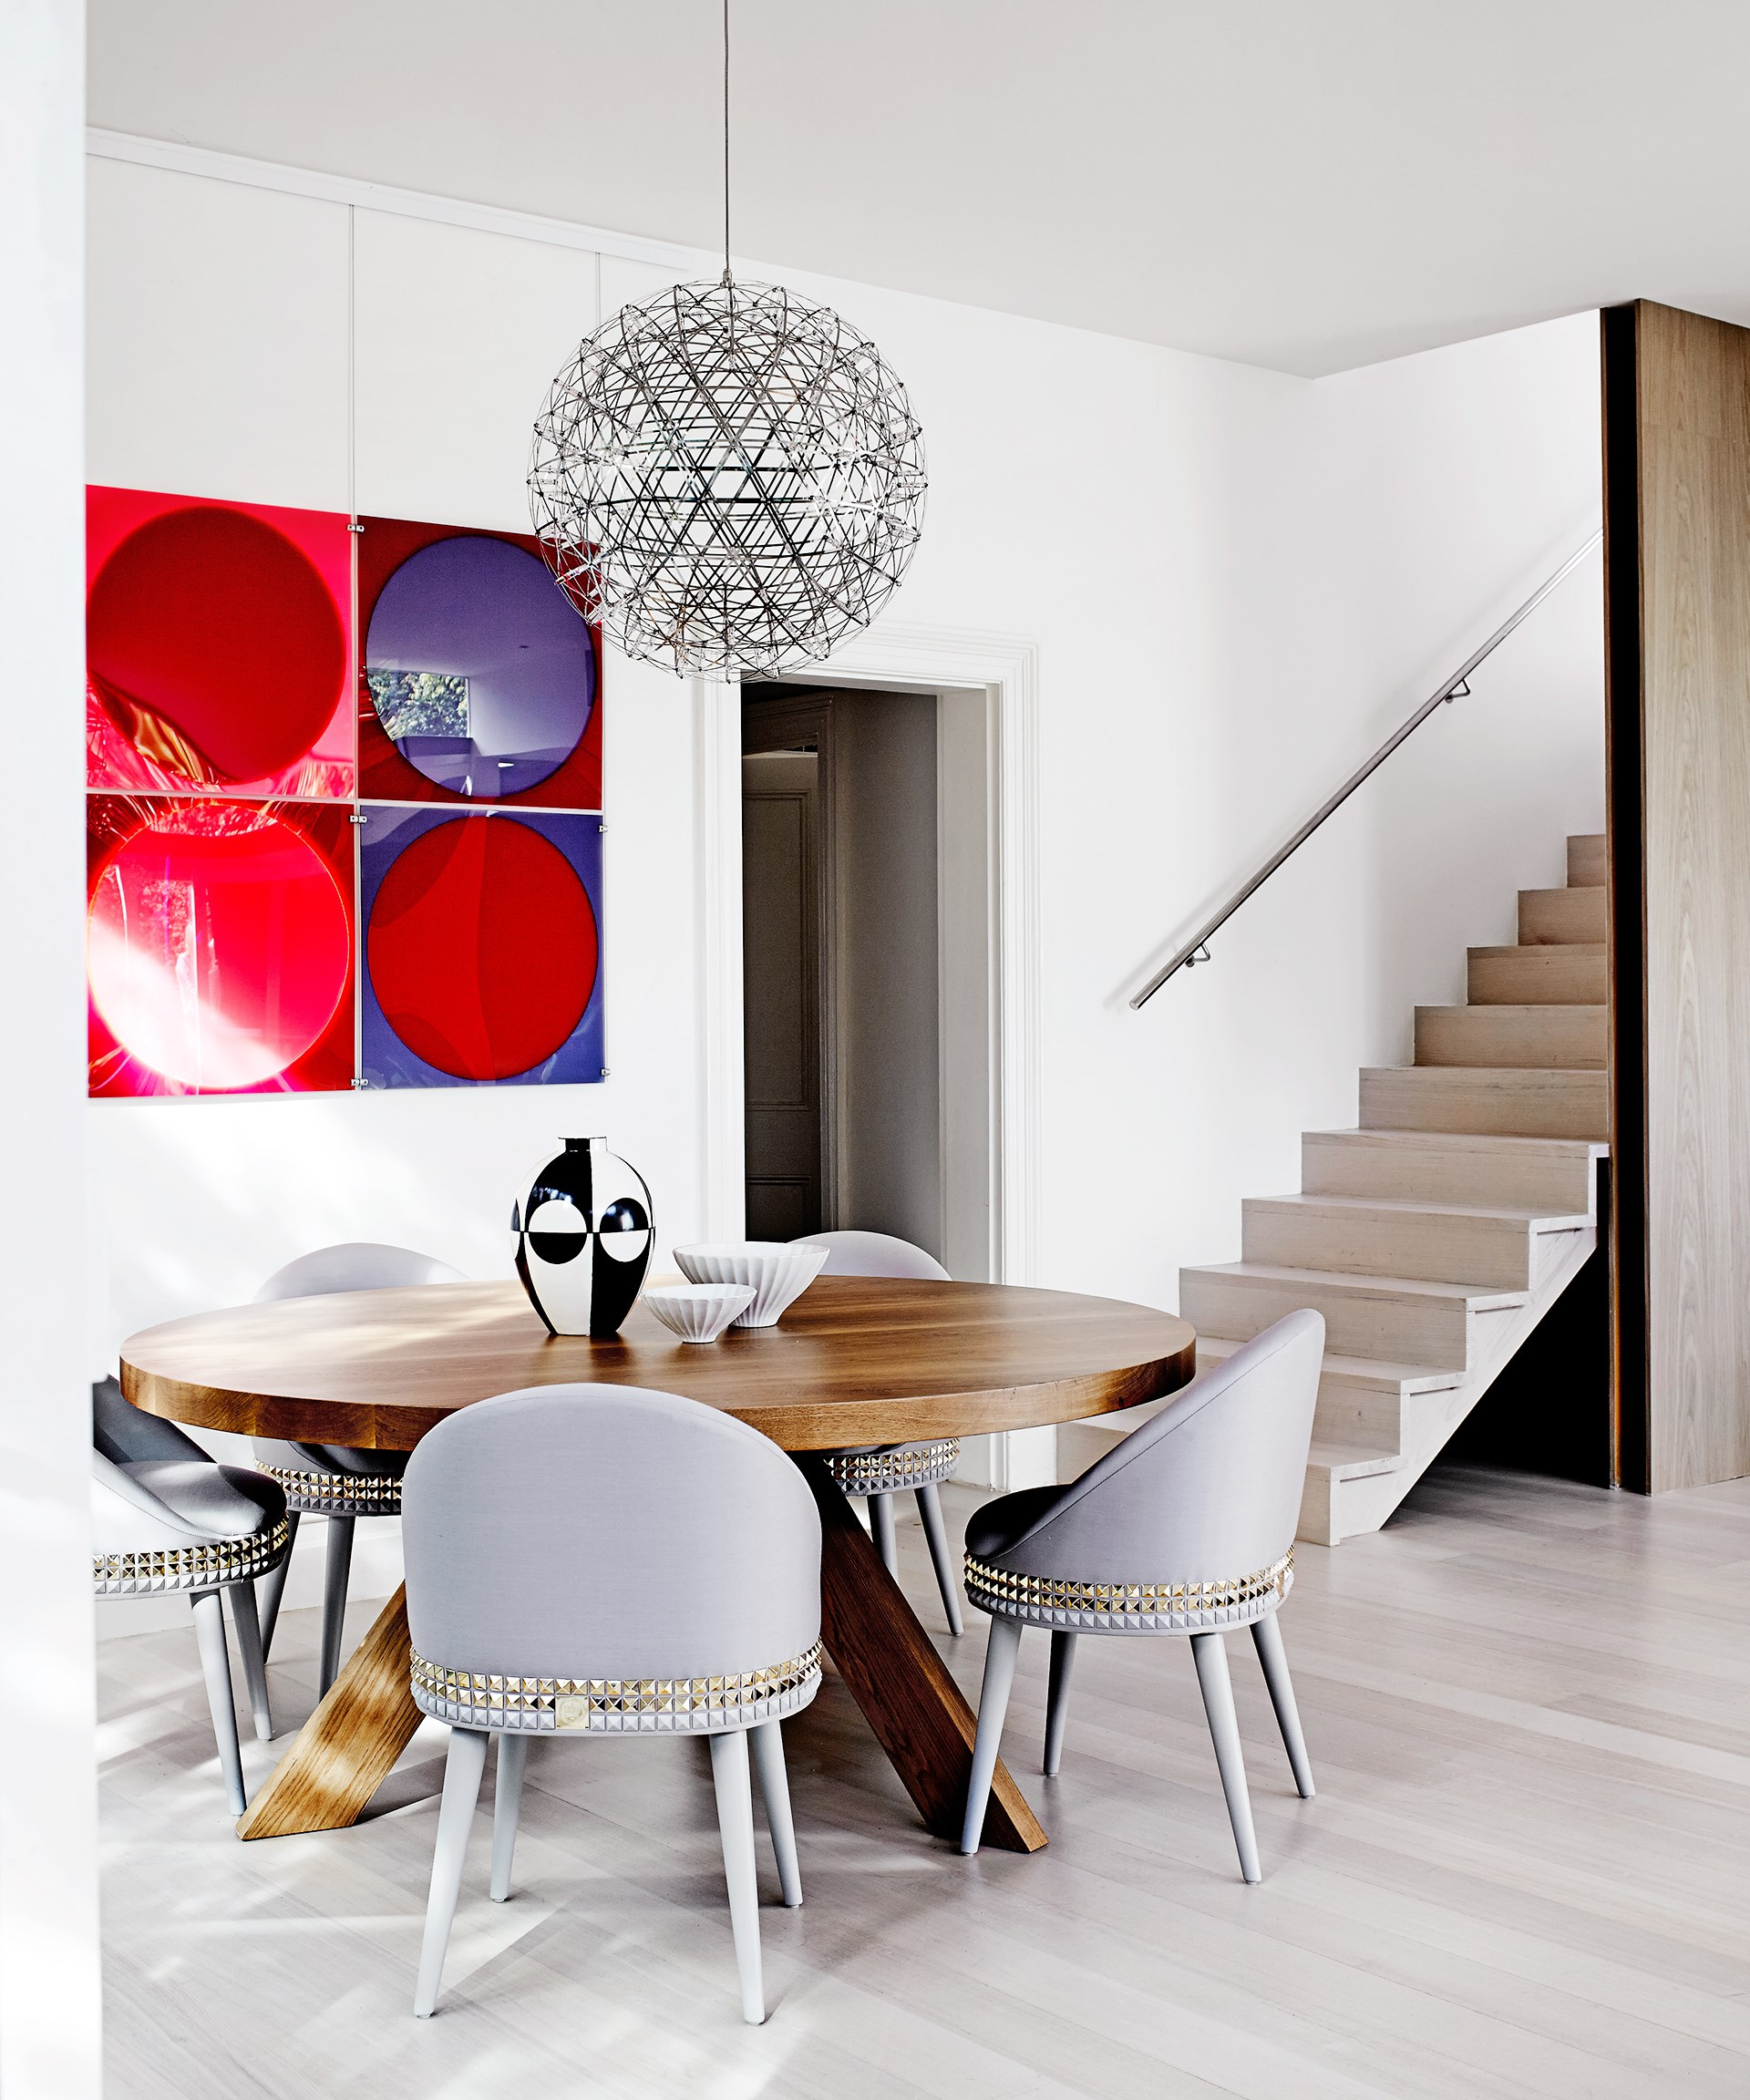 **Fine dining -** These super sexy dining chairs add a touch of glam to this [luxe Melbourne home](http://www.homestolove.com.au/gallery-vivienne-and-maxs-luxe-hotel-inspired-home-1671), creating a hotel-inspired dining setting without the booking. Photo: Sharyn Cairns